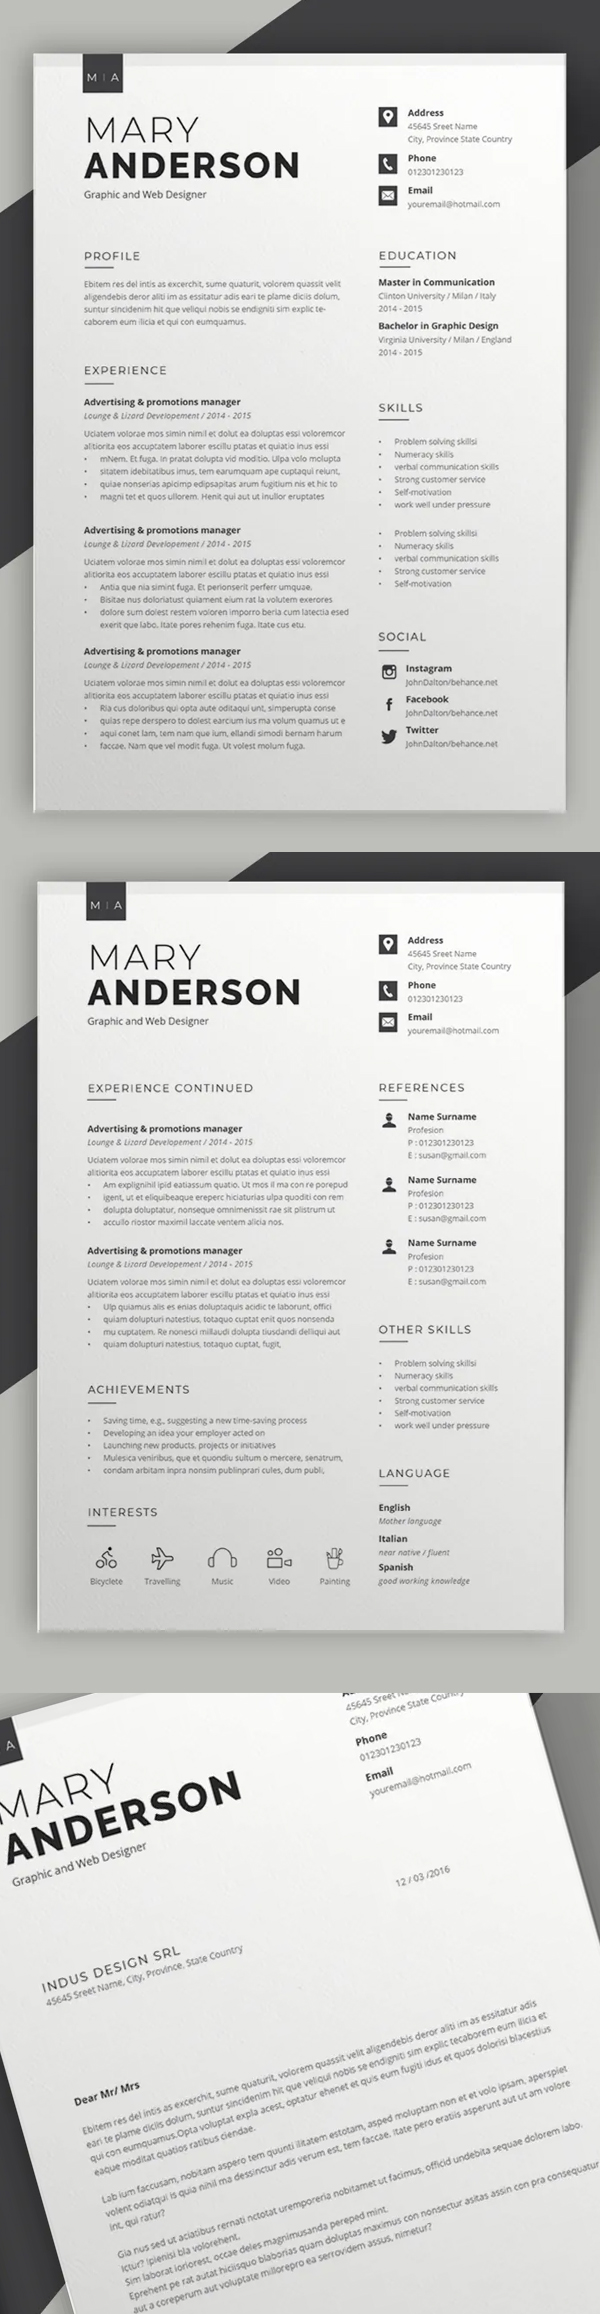 Resume 2 pages Resume + Cover Letter Font